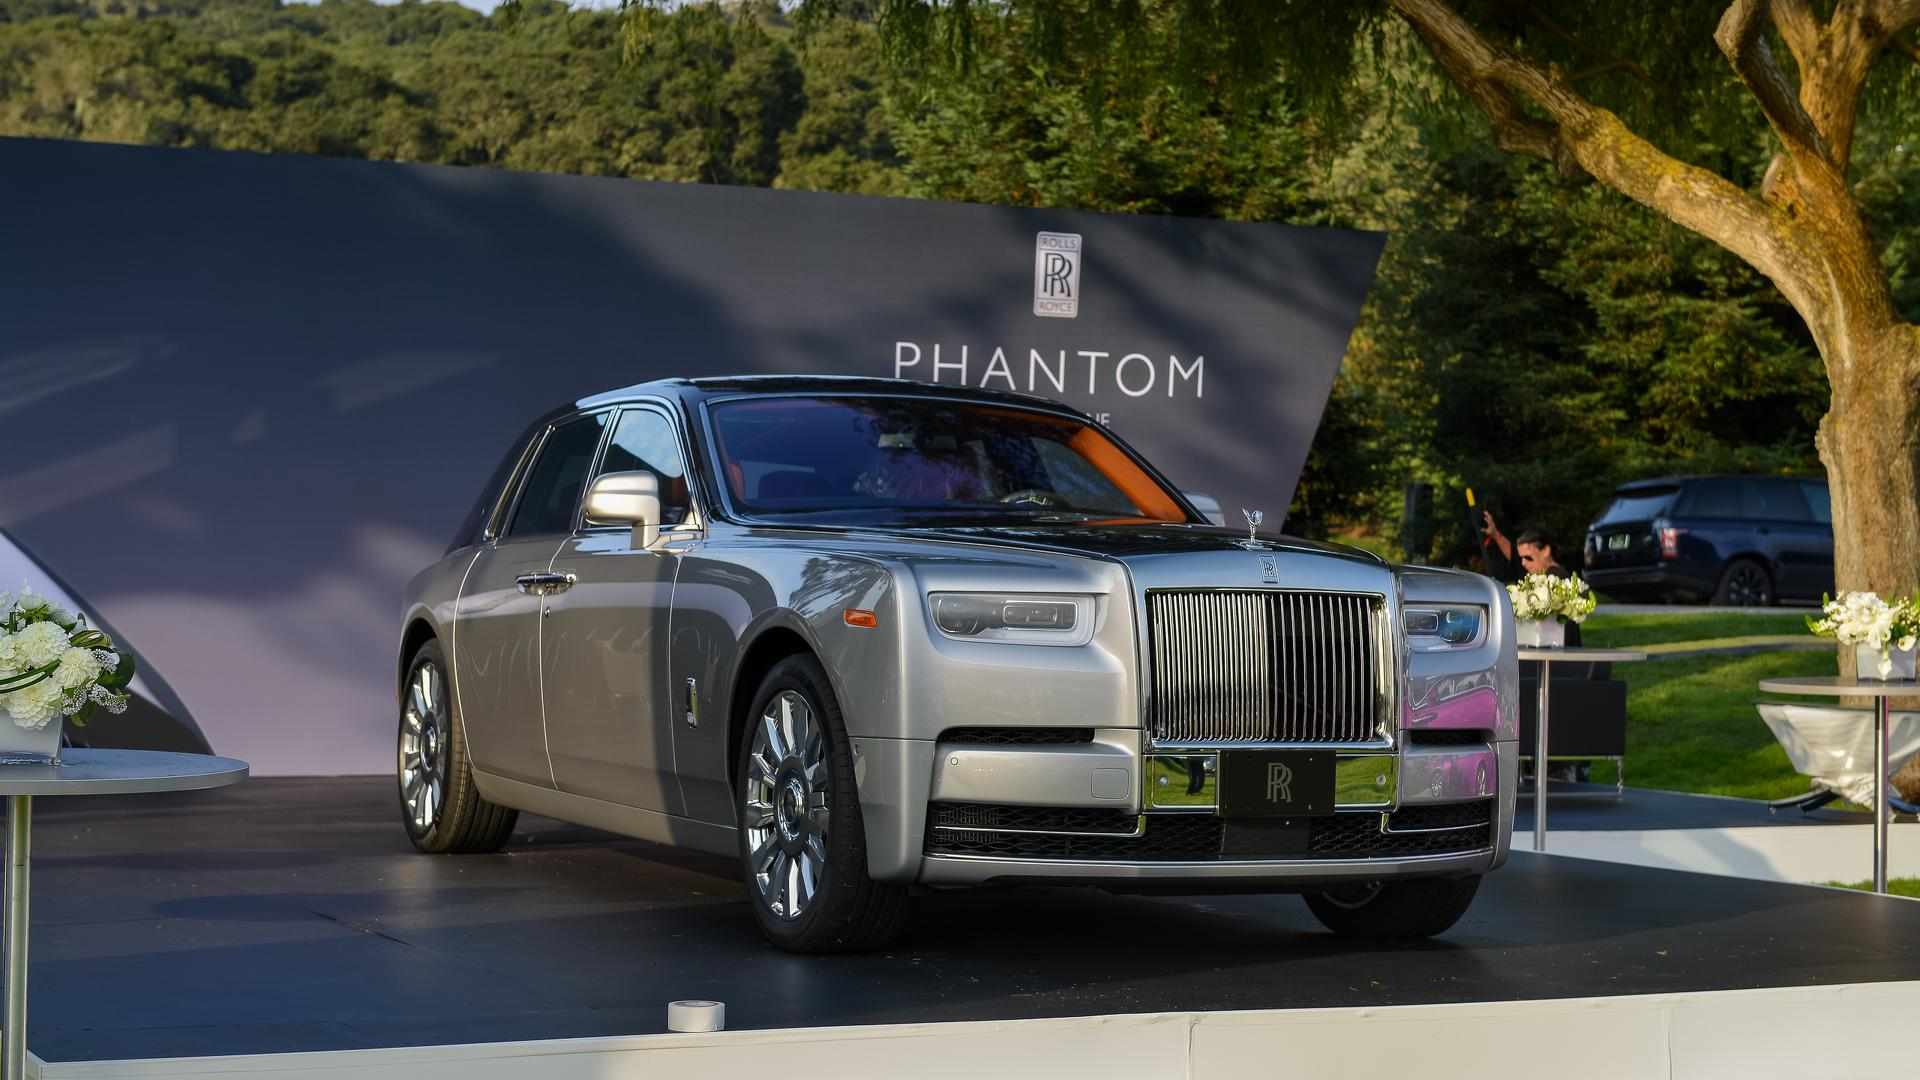 What a Savage 2018 Phantom at $550K